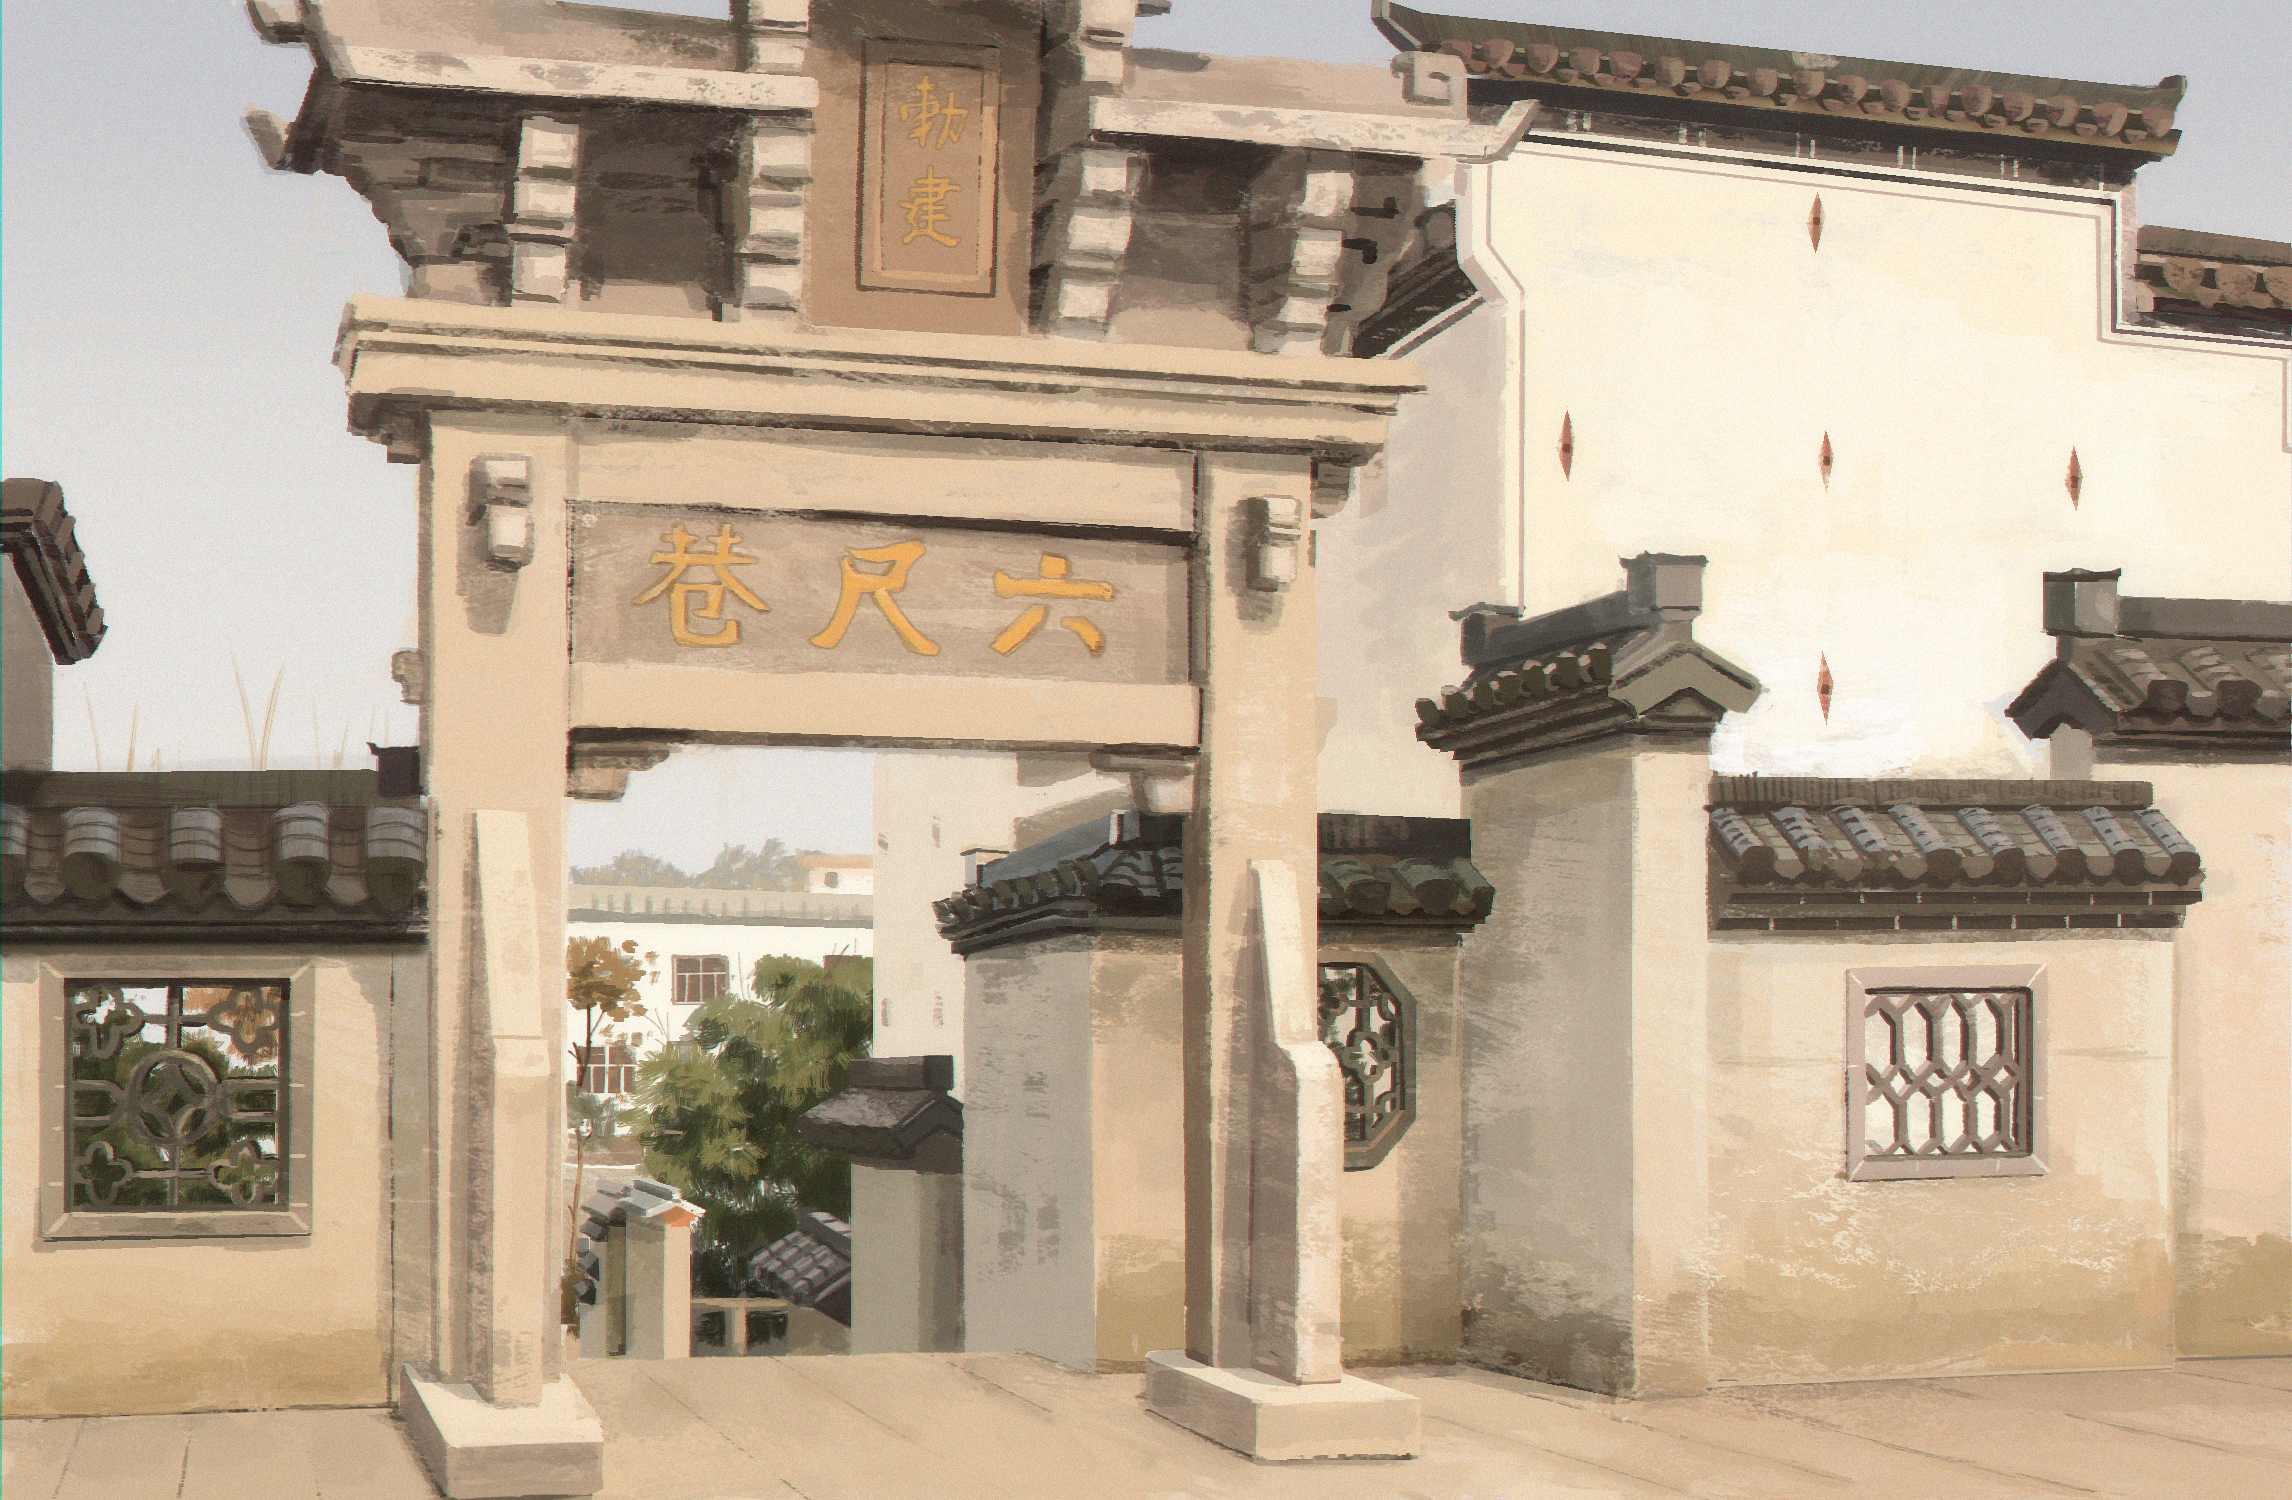 Life painting of the China temple that I visited before.